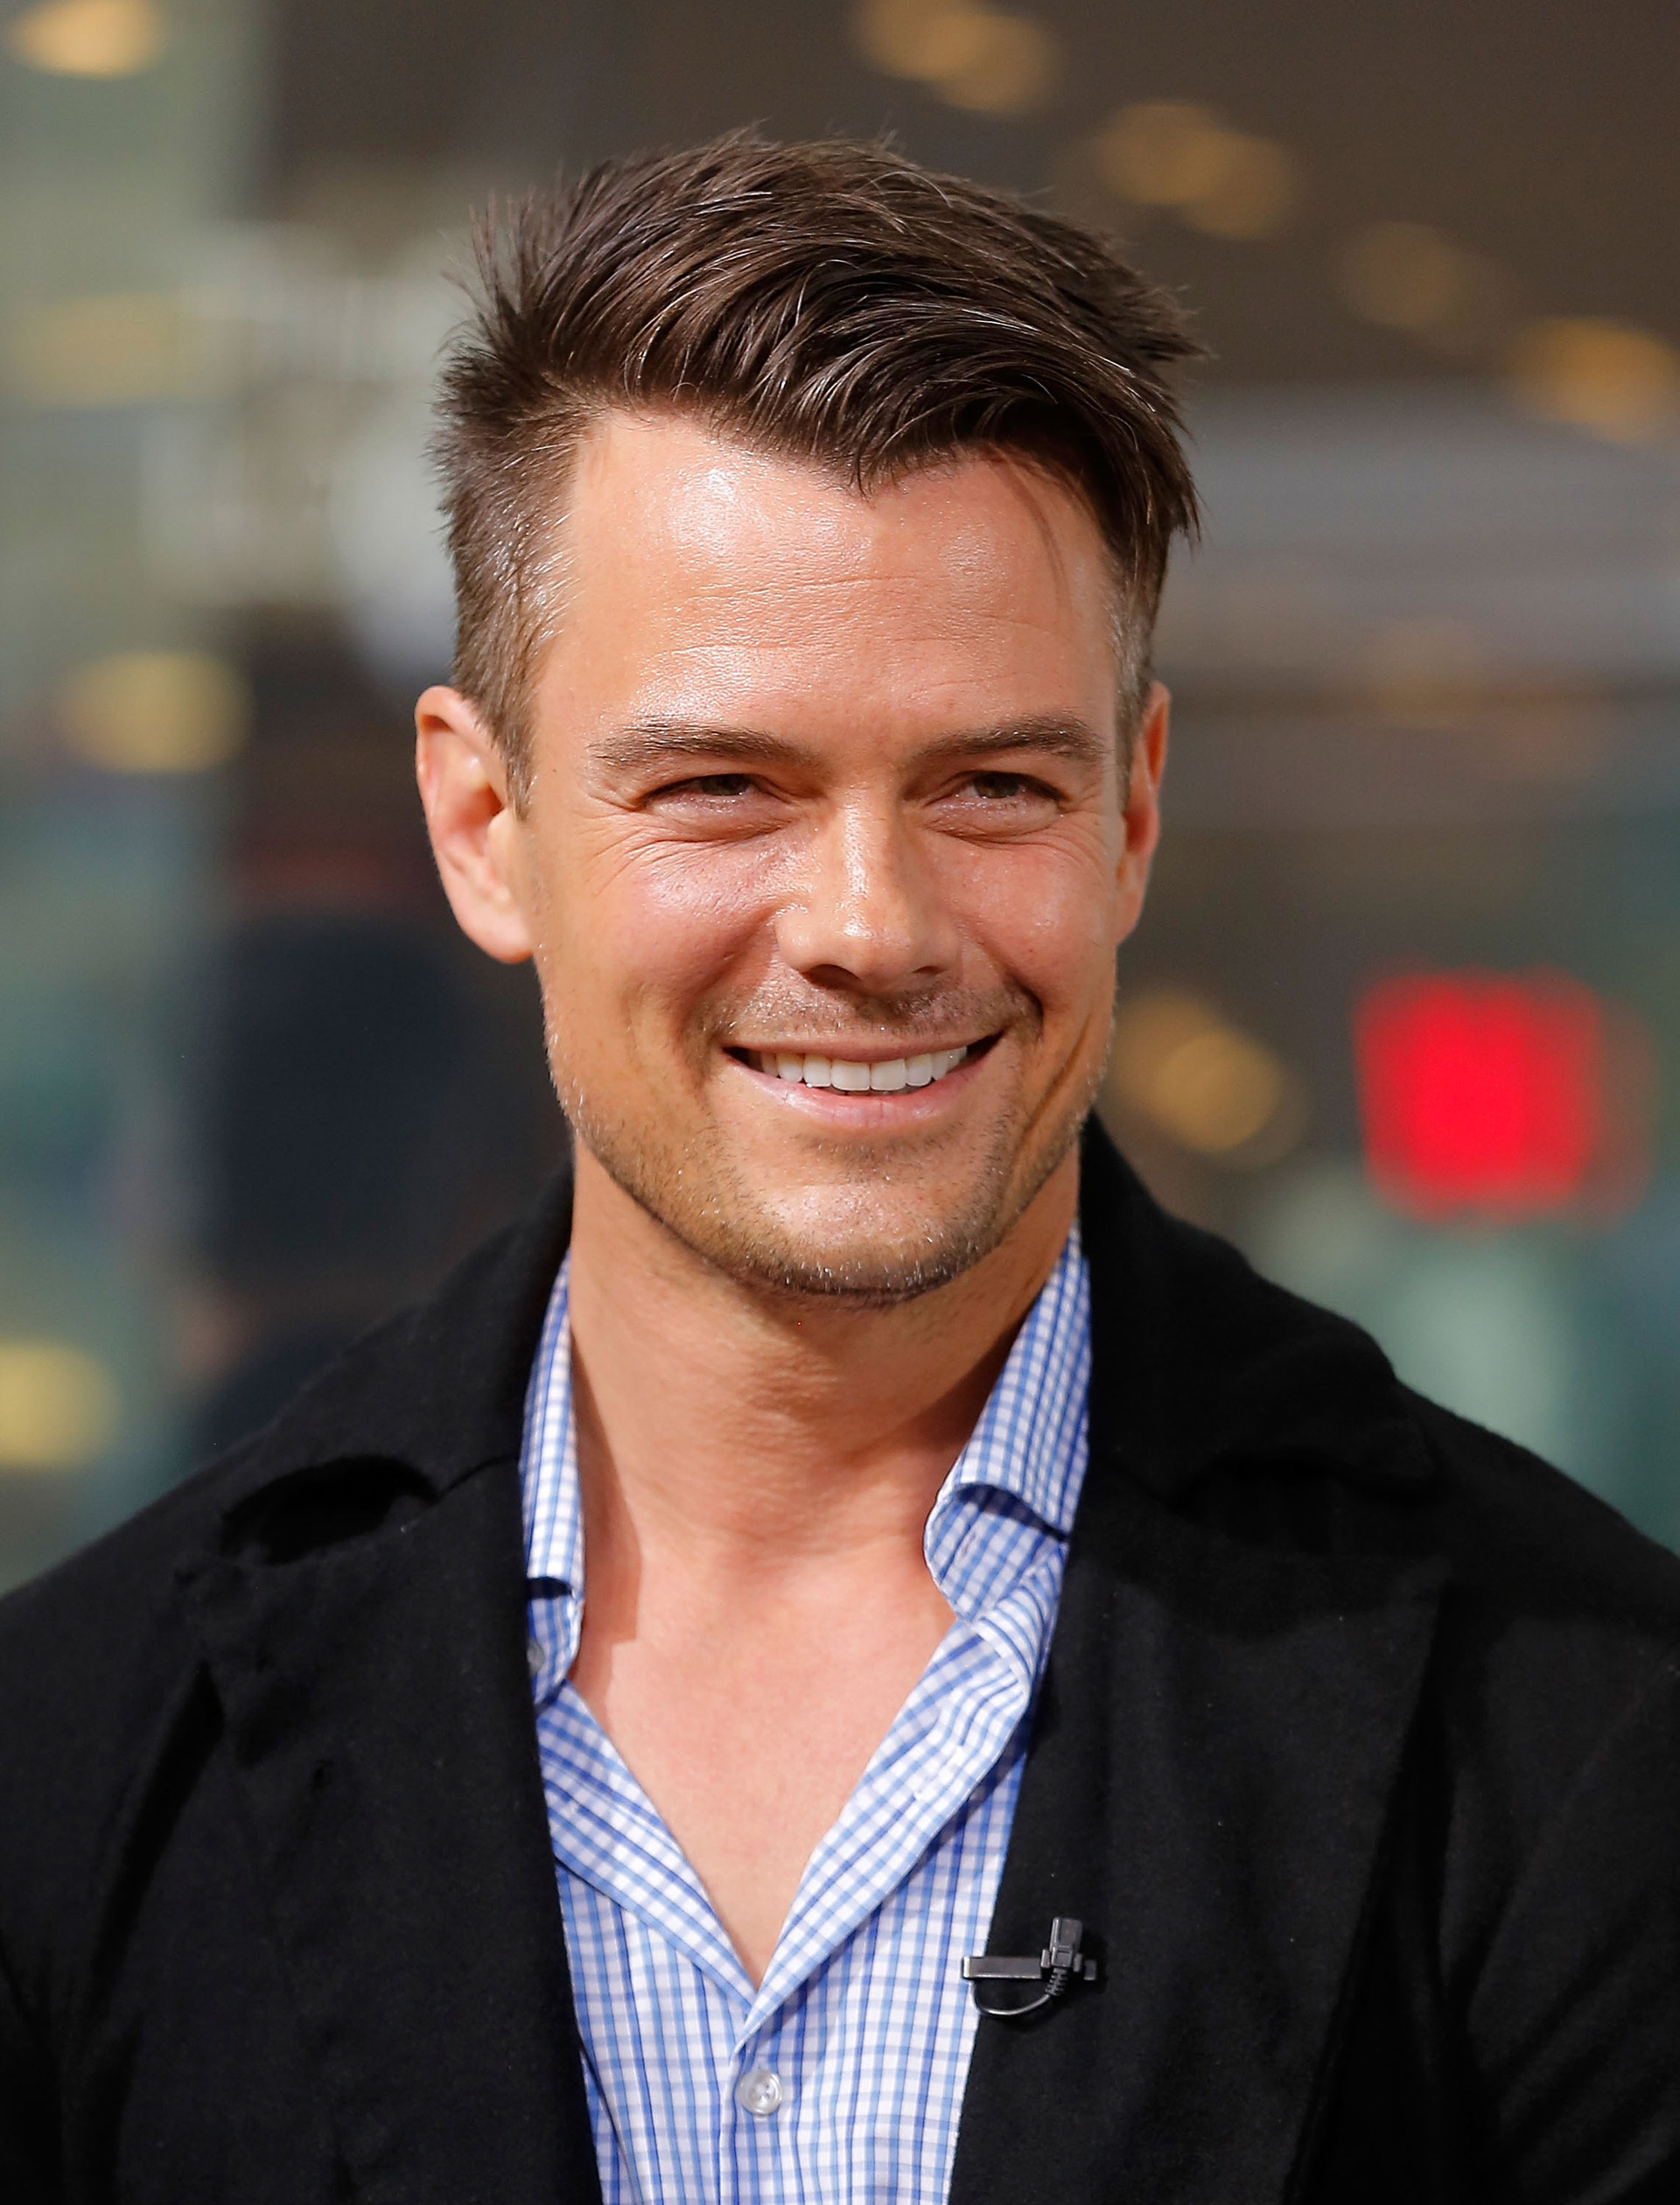 Josh Duhamel Interview - Unilever Project Sunlight